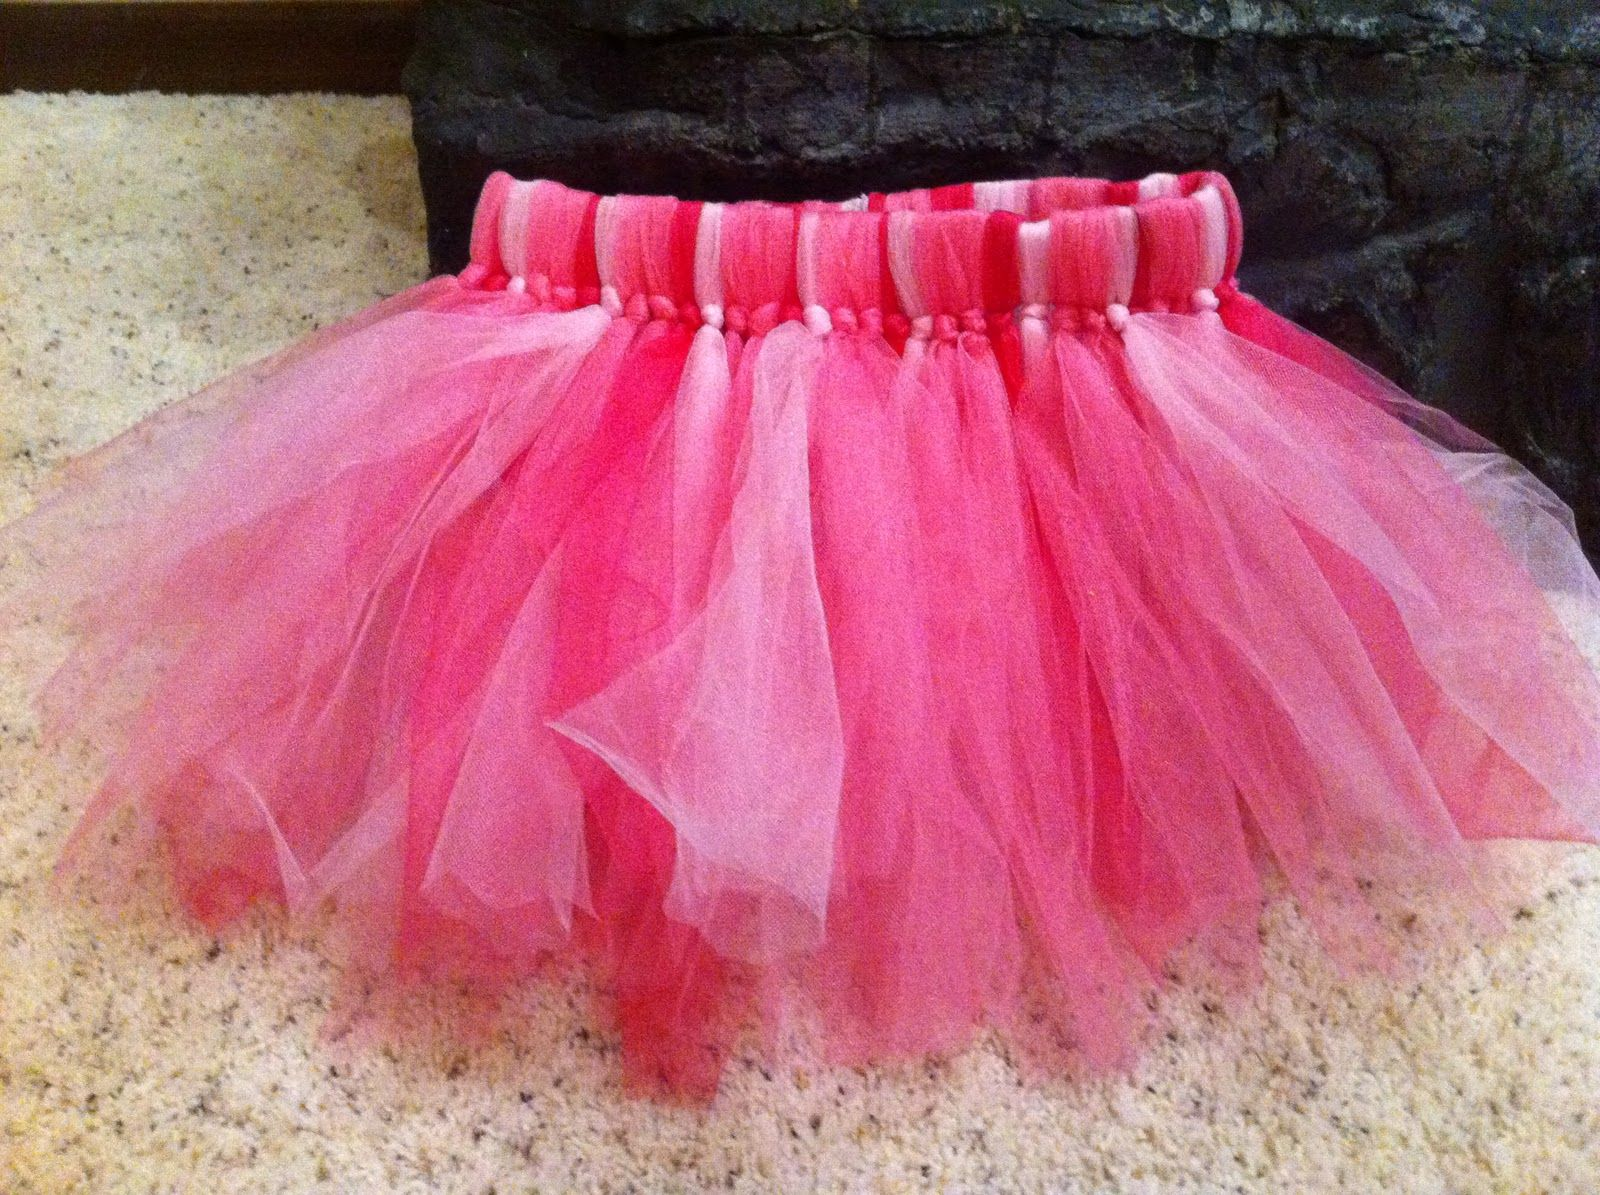 How To Make A Tulle Skirt I Like How She Tied Knots On The